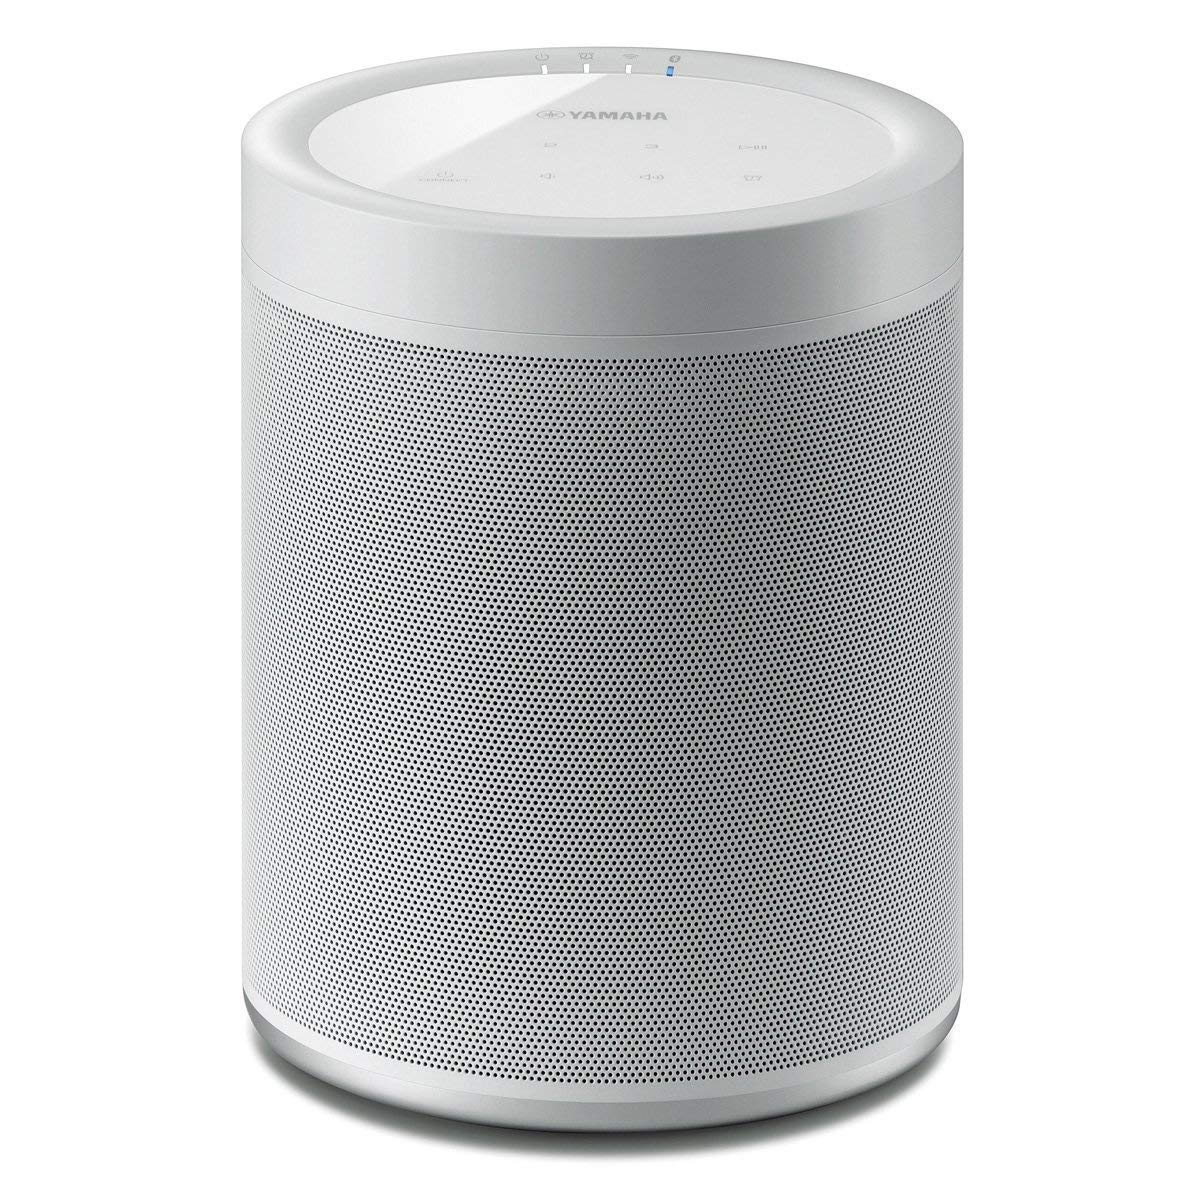 Yamaha WX-021 MusicCast 20 Wireless Speaker, Alexa Voice Control, White (Renewed) by Yamaha Audio